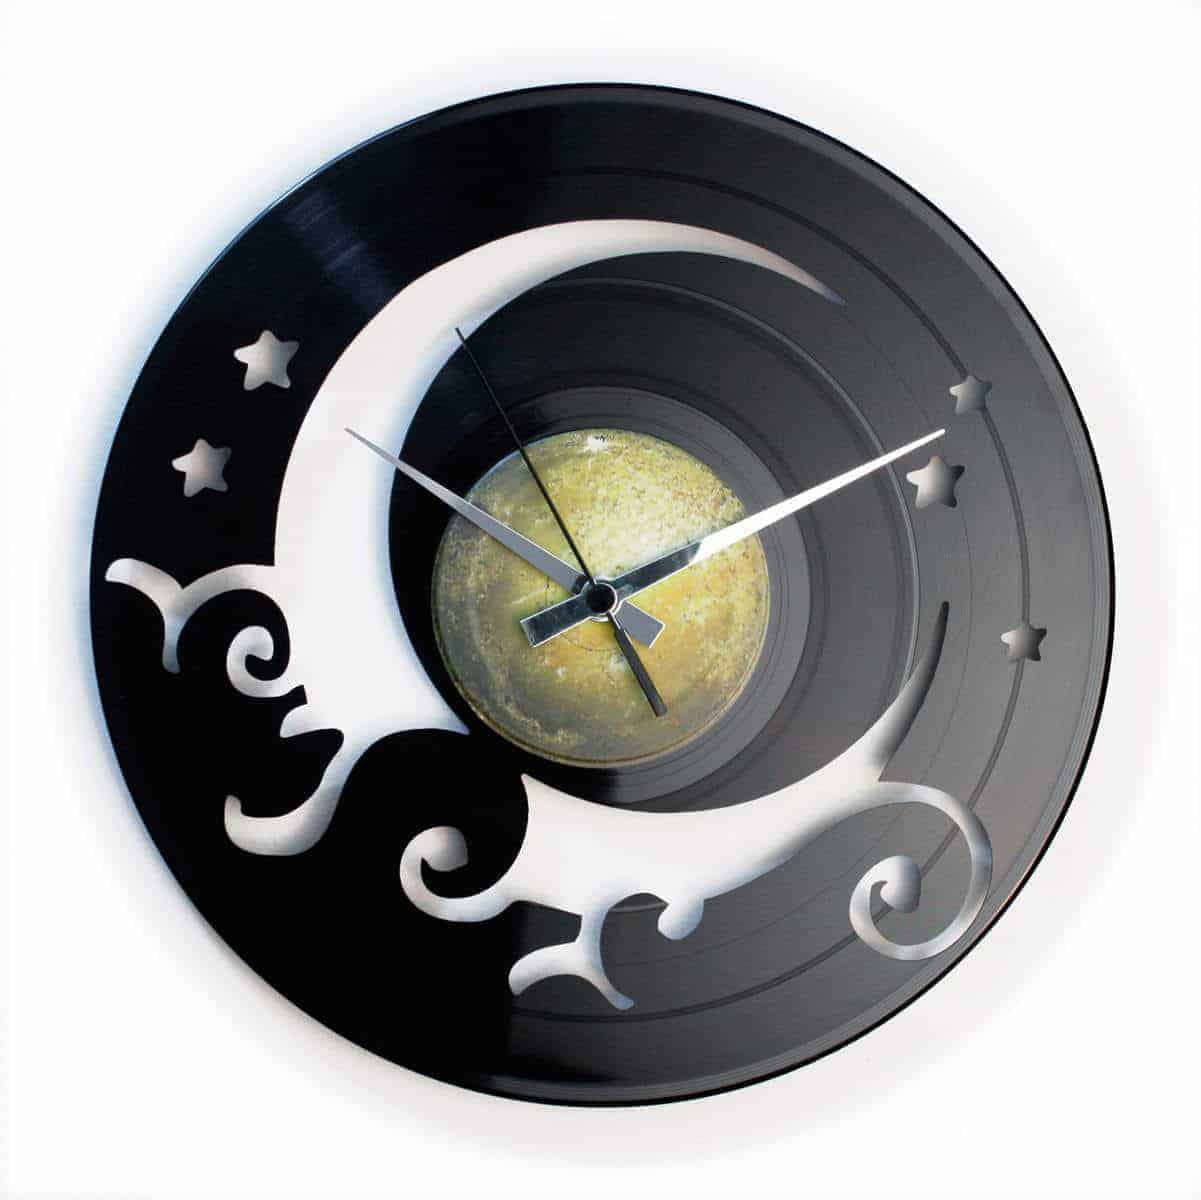 THE MOON VINYL RECORD CLOCK